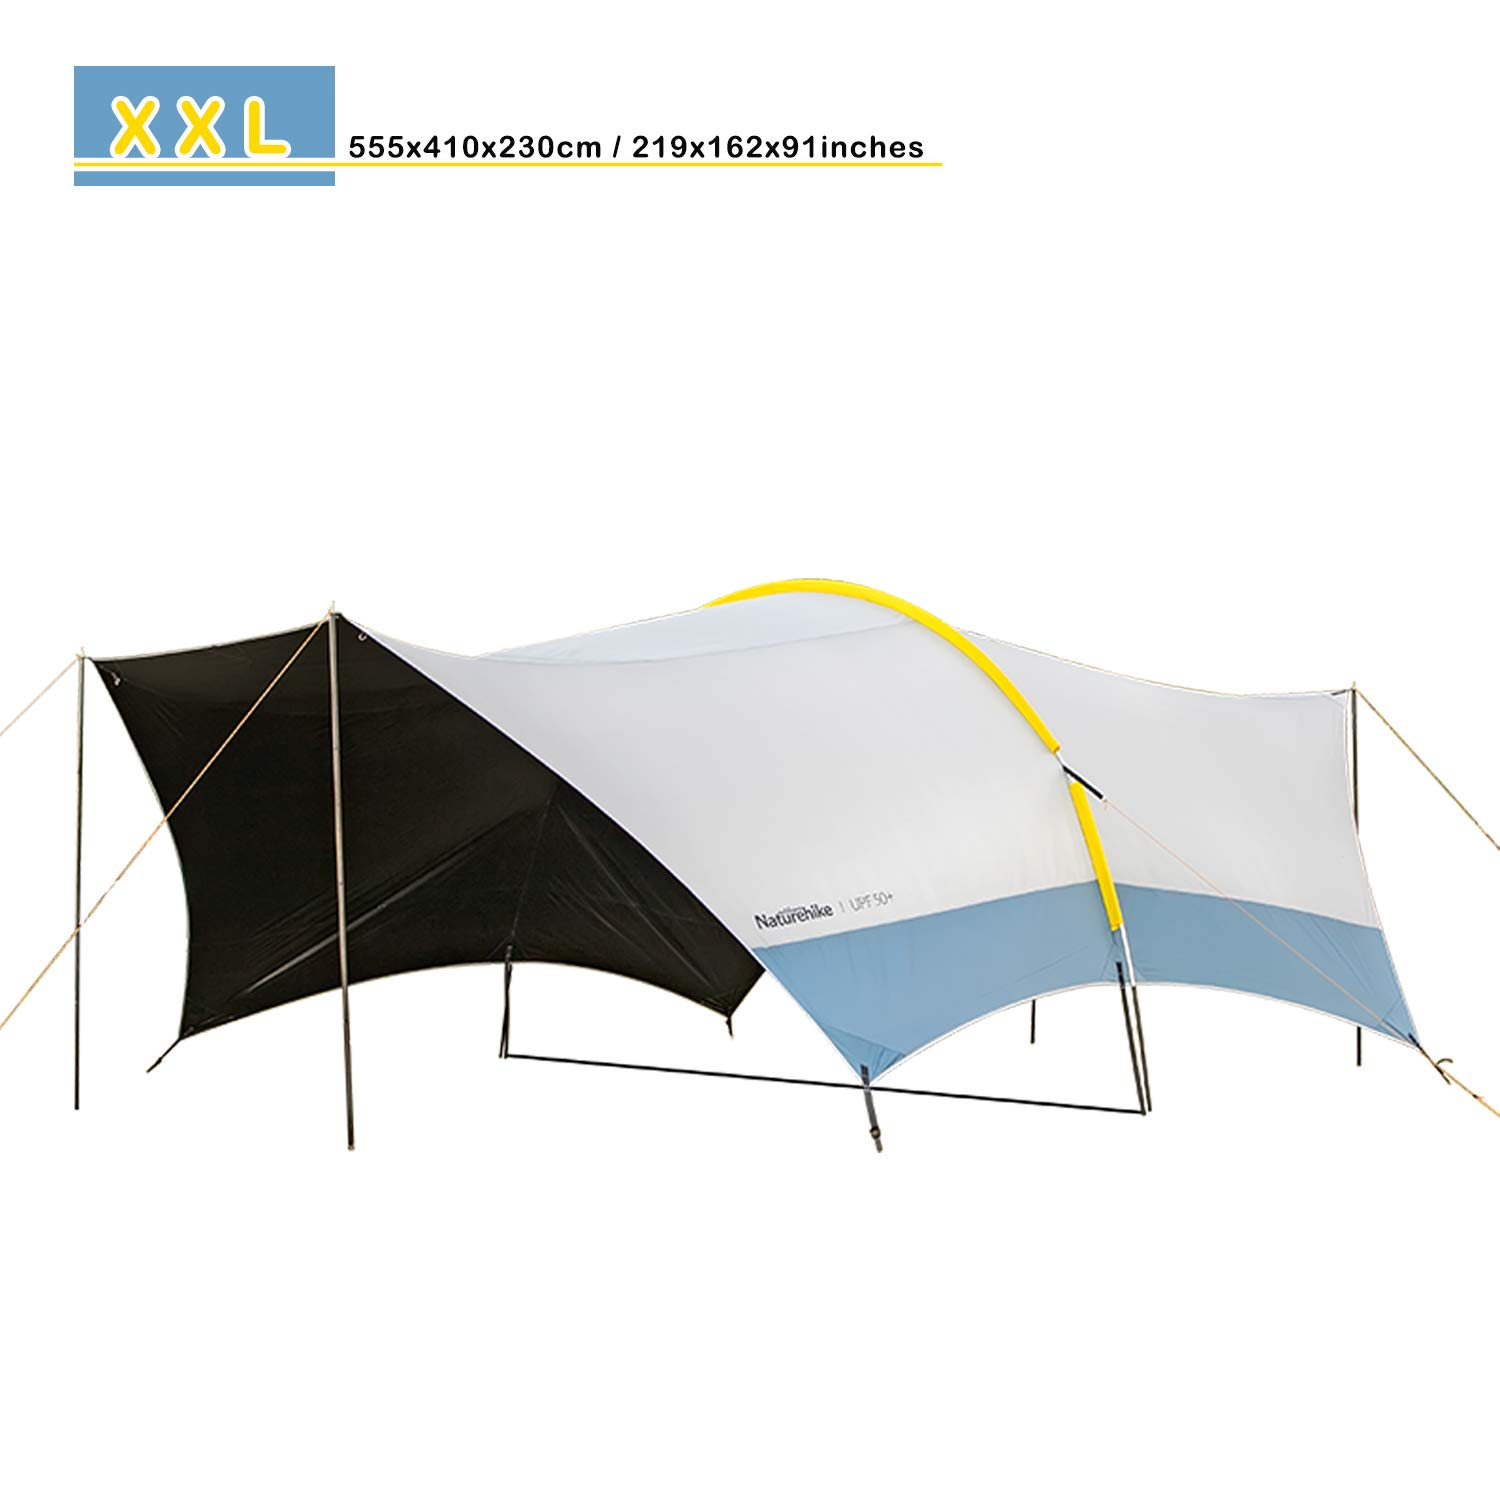 Topnaca Lightweight Camping Tarp Shelter Beach Tent Sun Shade Canopy with Tarp Poles, Portable Waterproof Sun-Proof 219x162x91in for Family Day Fishing Picnic Beach Festivals (Grey/Upgraded) by Topnaca